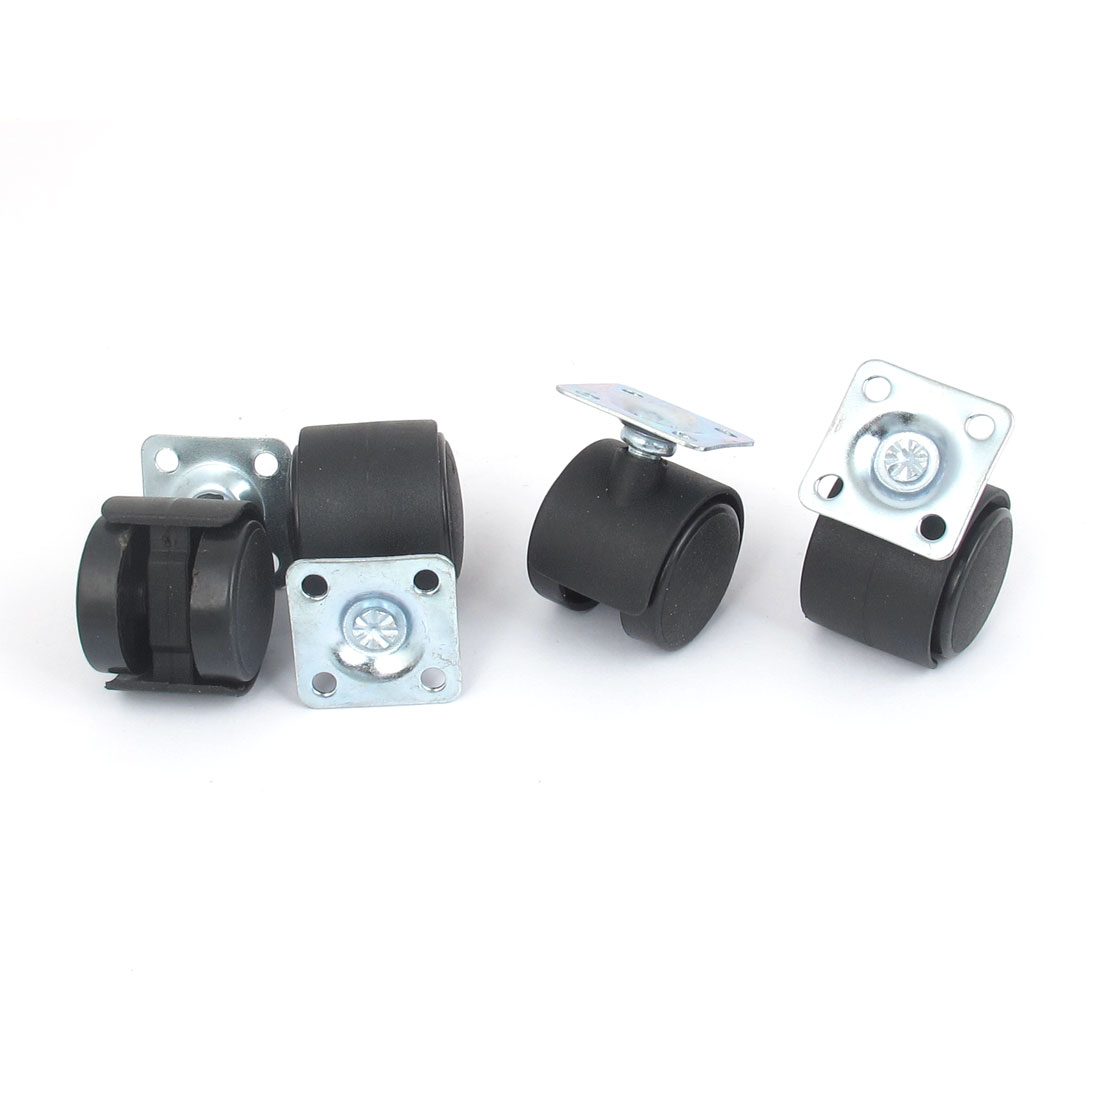 UXCELL 1.2 Dia Plastic Wheel Metal Top Plate Swivel Ball Bearing Casters 4 Pcs uxcell 4 pcs white 1 25 single wheel light duty swivel plate plastic caster